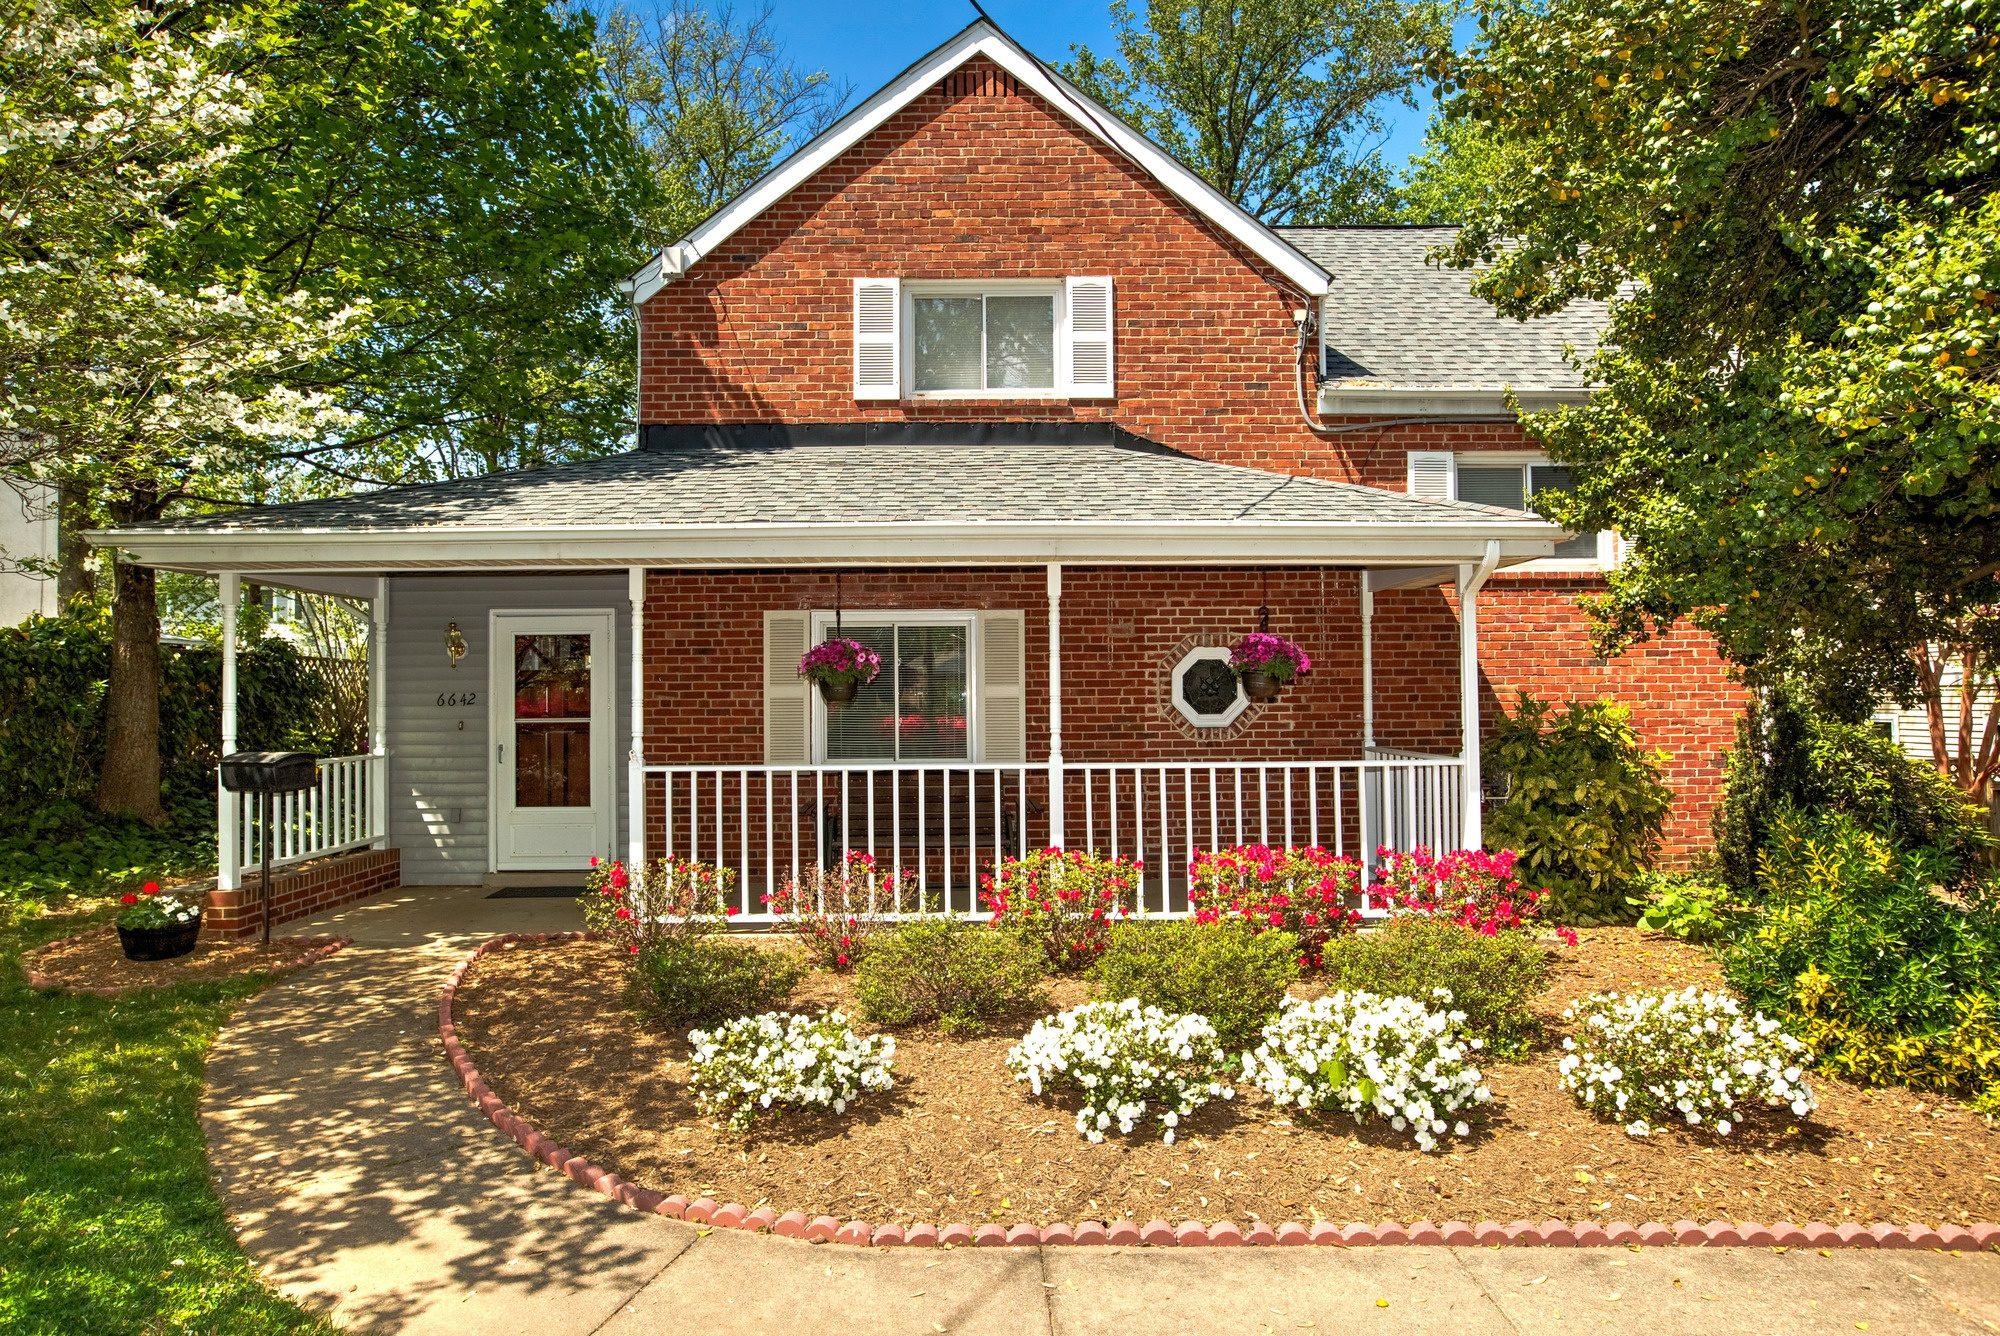 SOLD: Renovated 5 Bedroom in Falls Church